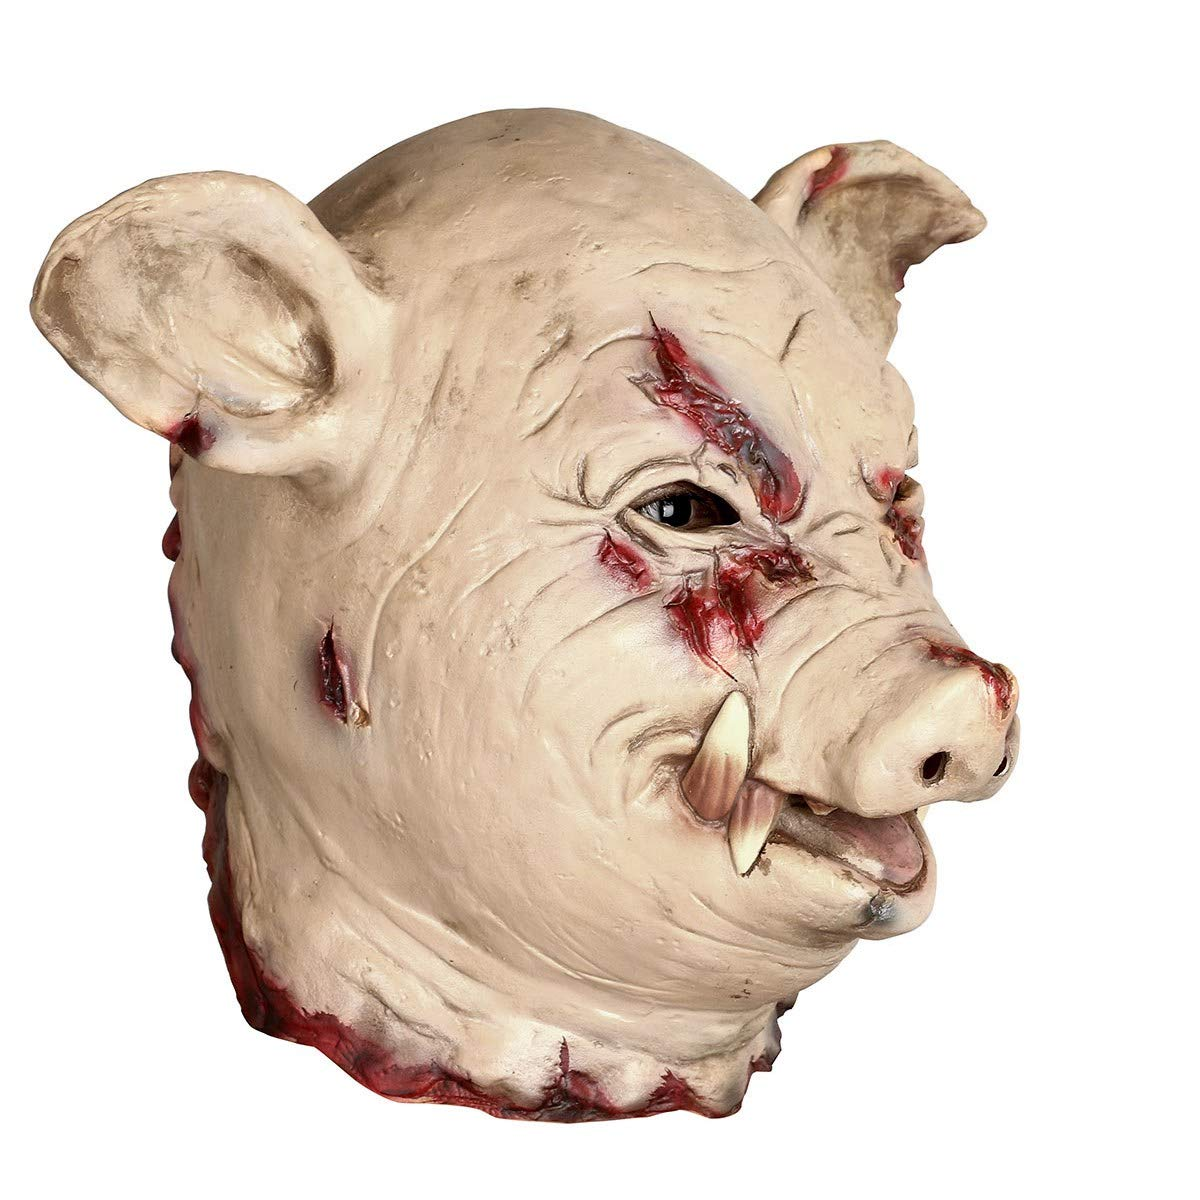 INKERSCOOP Halloween Horror Pig Head Mask Latex Animal Prop Adult Props Clown Mask Head Cover